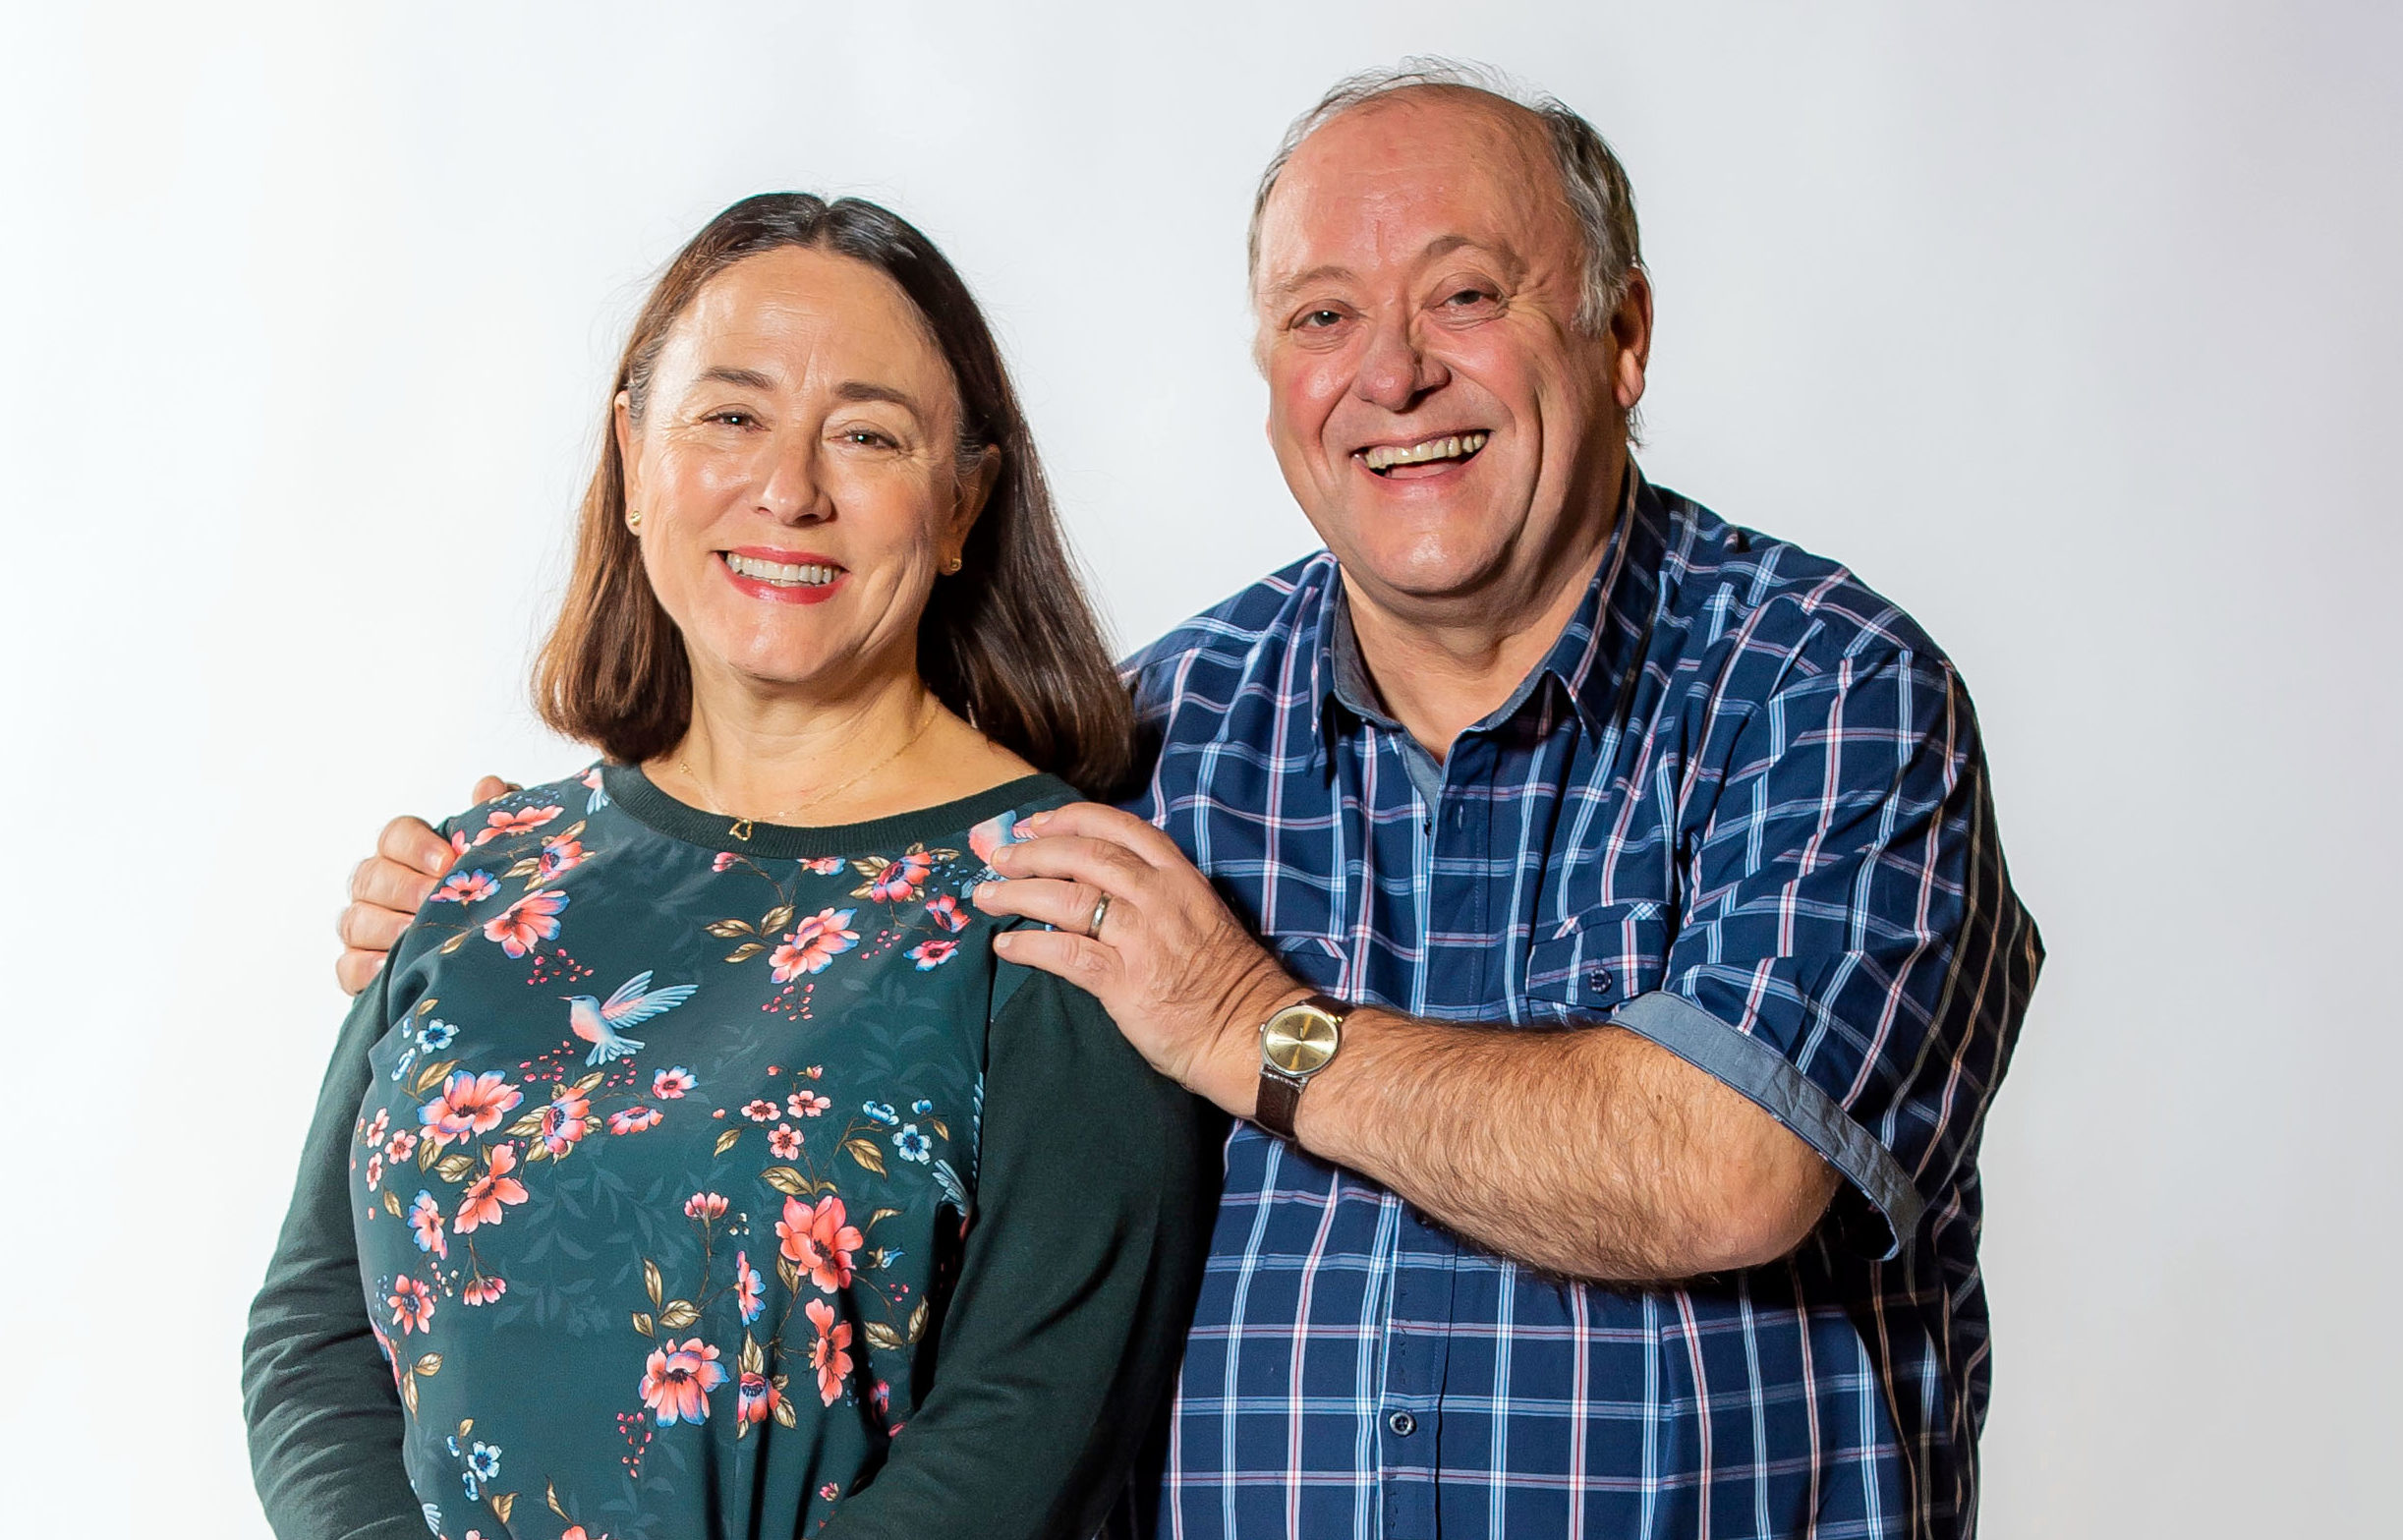 Alex Norton and Arabella Weir in Two Doors Down (Alan Peebles / BBC)